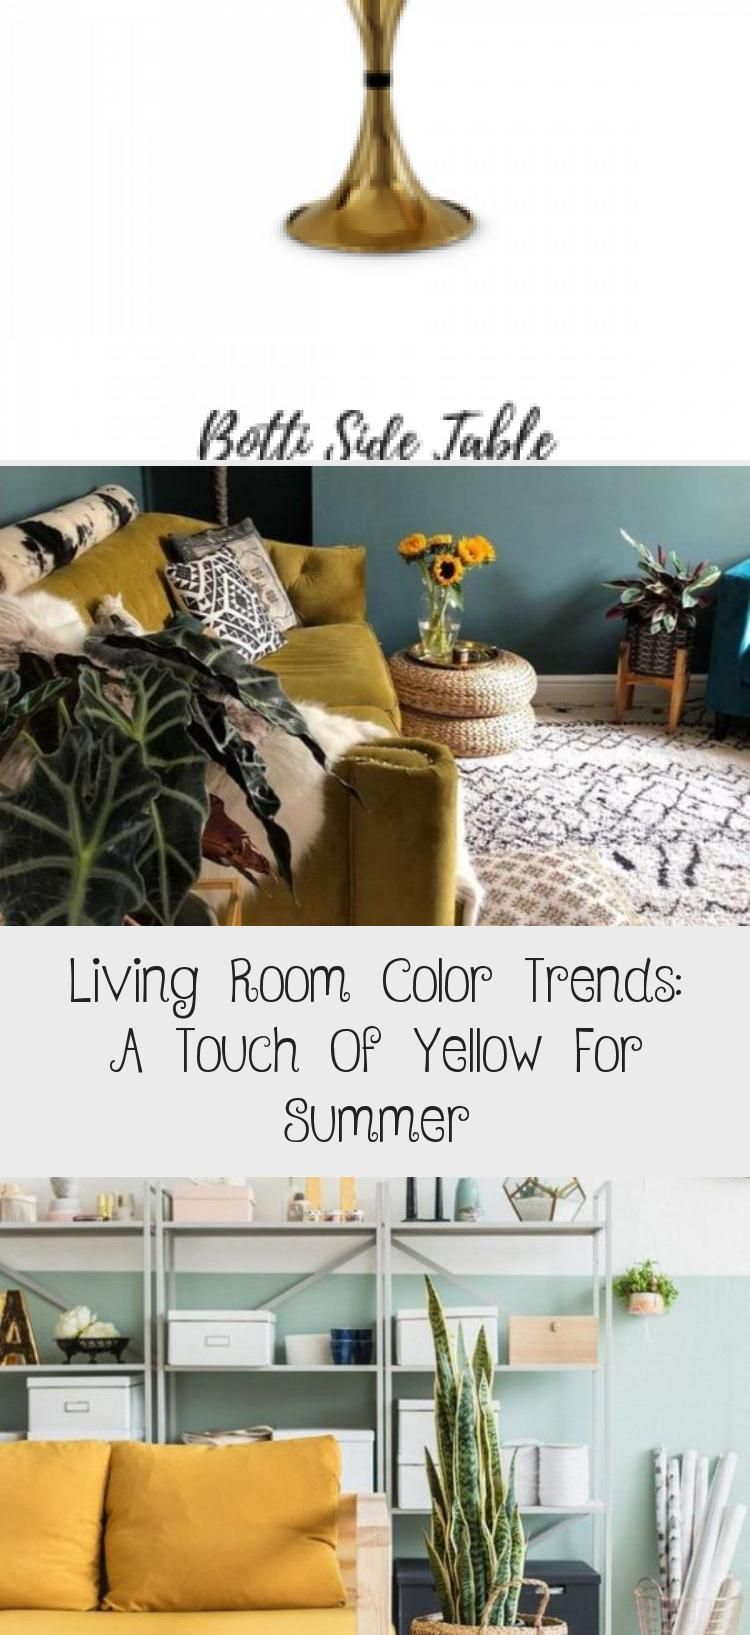 Living Room Color Trends: A Touch Of Yellow For Summer - Interior Design#color #design #interior #living #room #summer #touch #trends #yellow